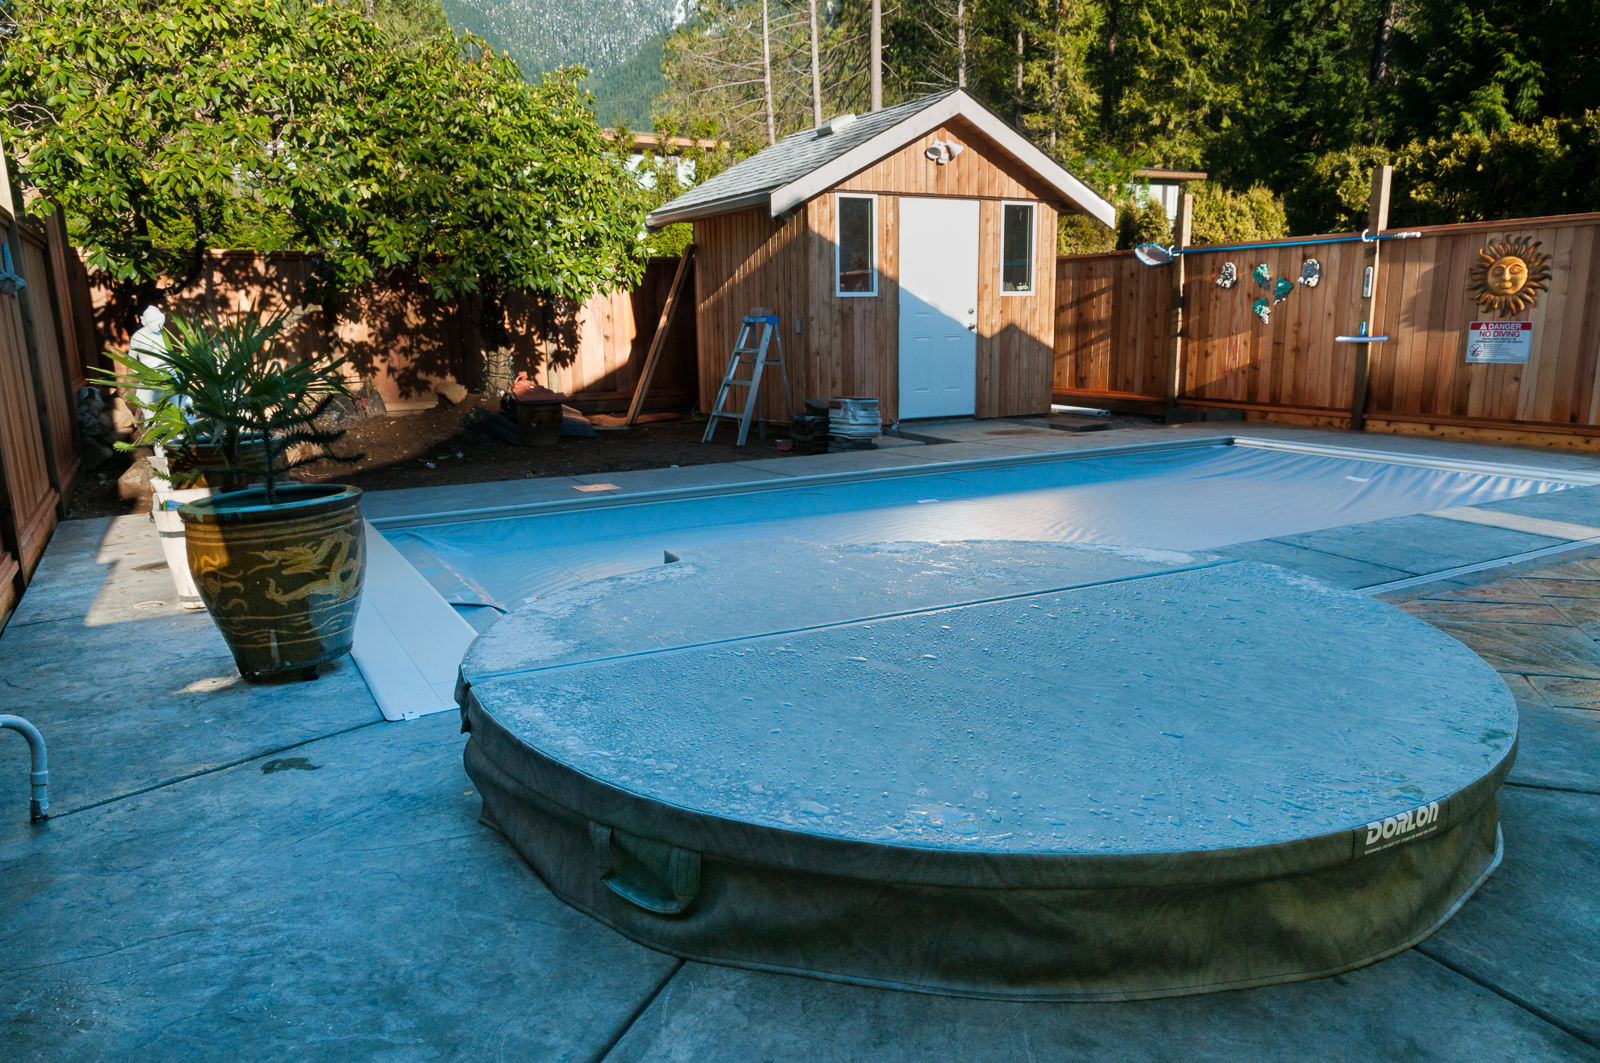 Aquatic Pools Ltd in Surrey